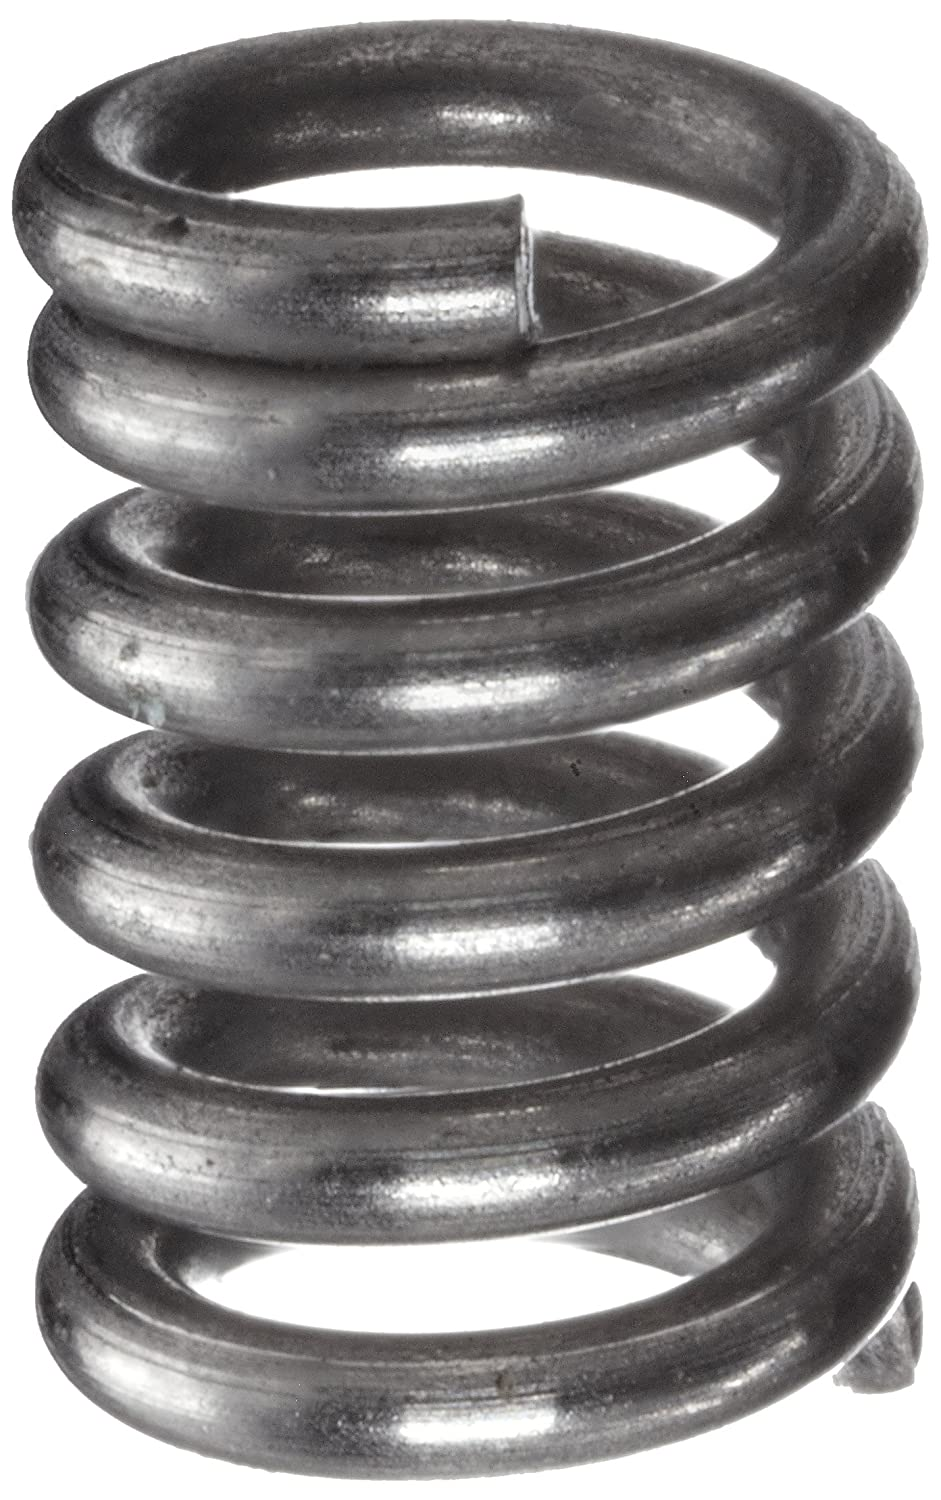 Compression Spring, Stainless Steel, Metric, 3 mm OD, 0.5 mm Wire ...